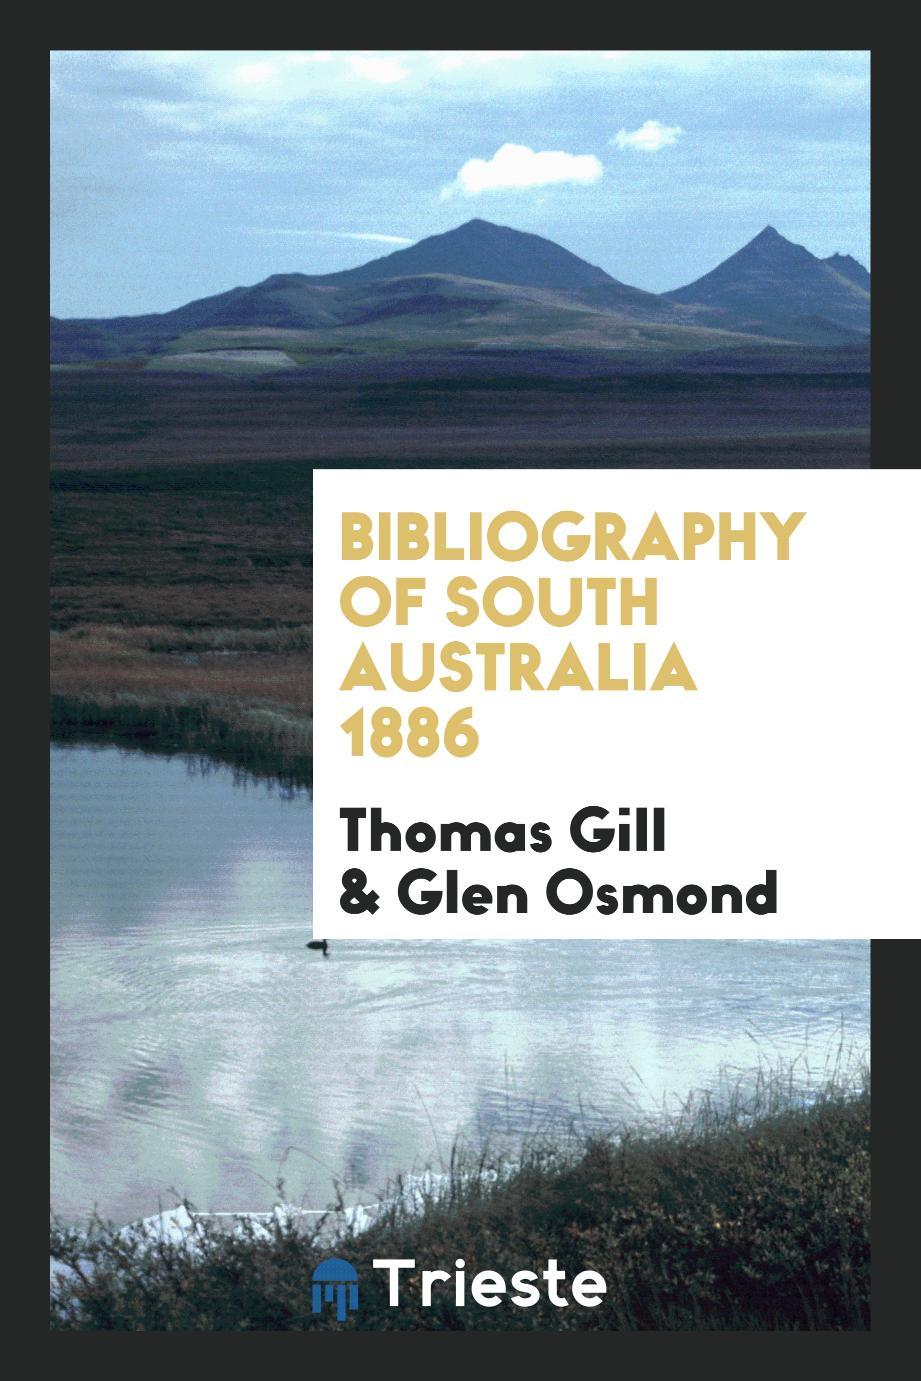 Bibliography of South Australia 1886